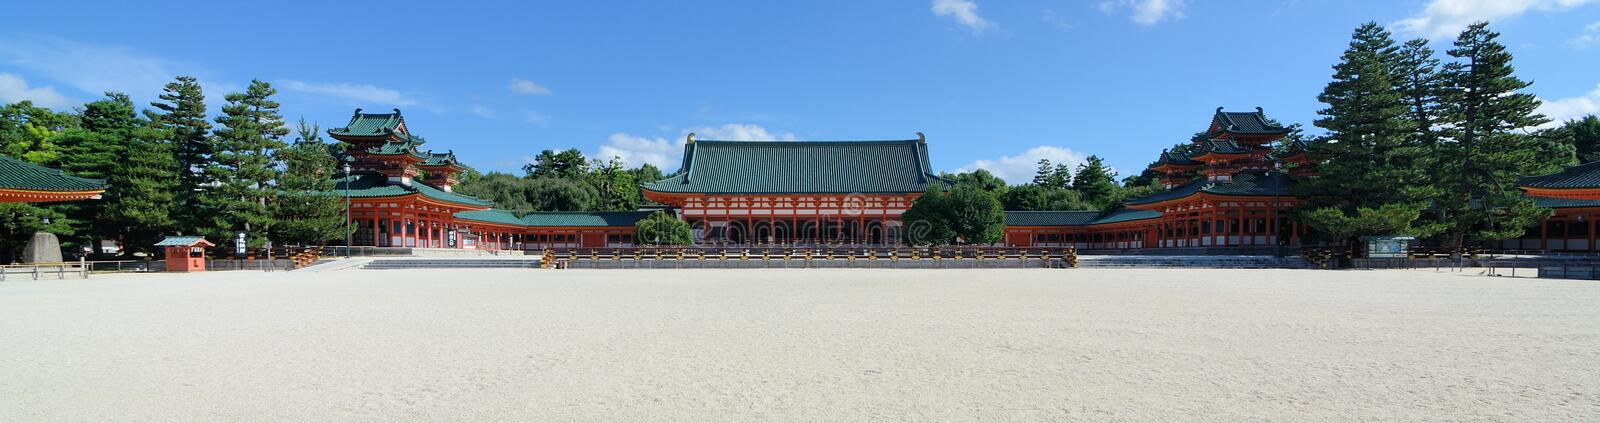 Download Heian Shrine Stock Images - Image: 20806334